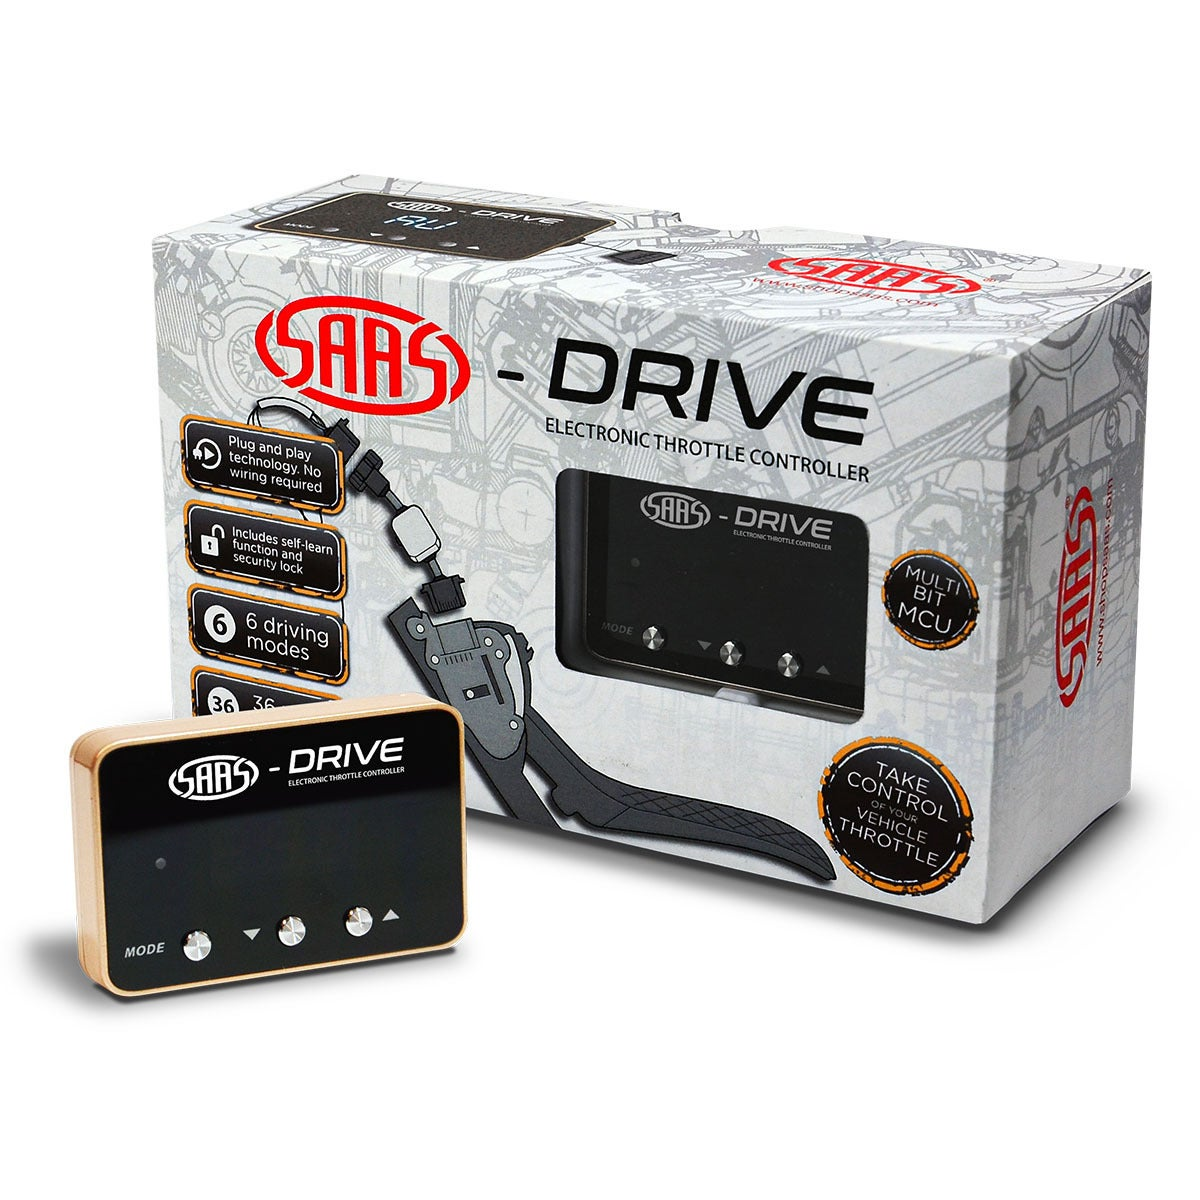 SAAS-Drive Throttle Controller For Mazda CX-8 2017 >